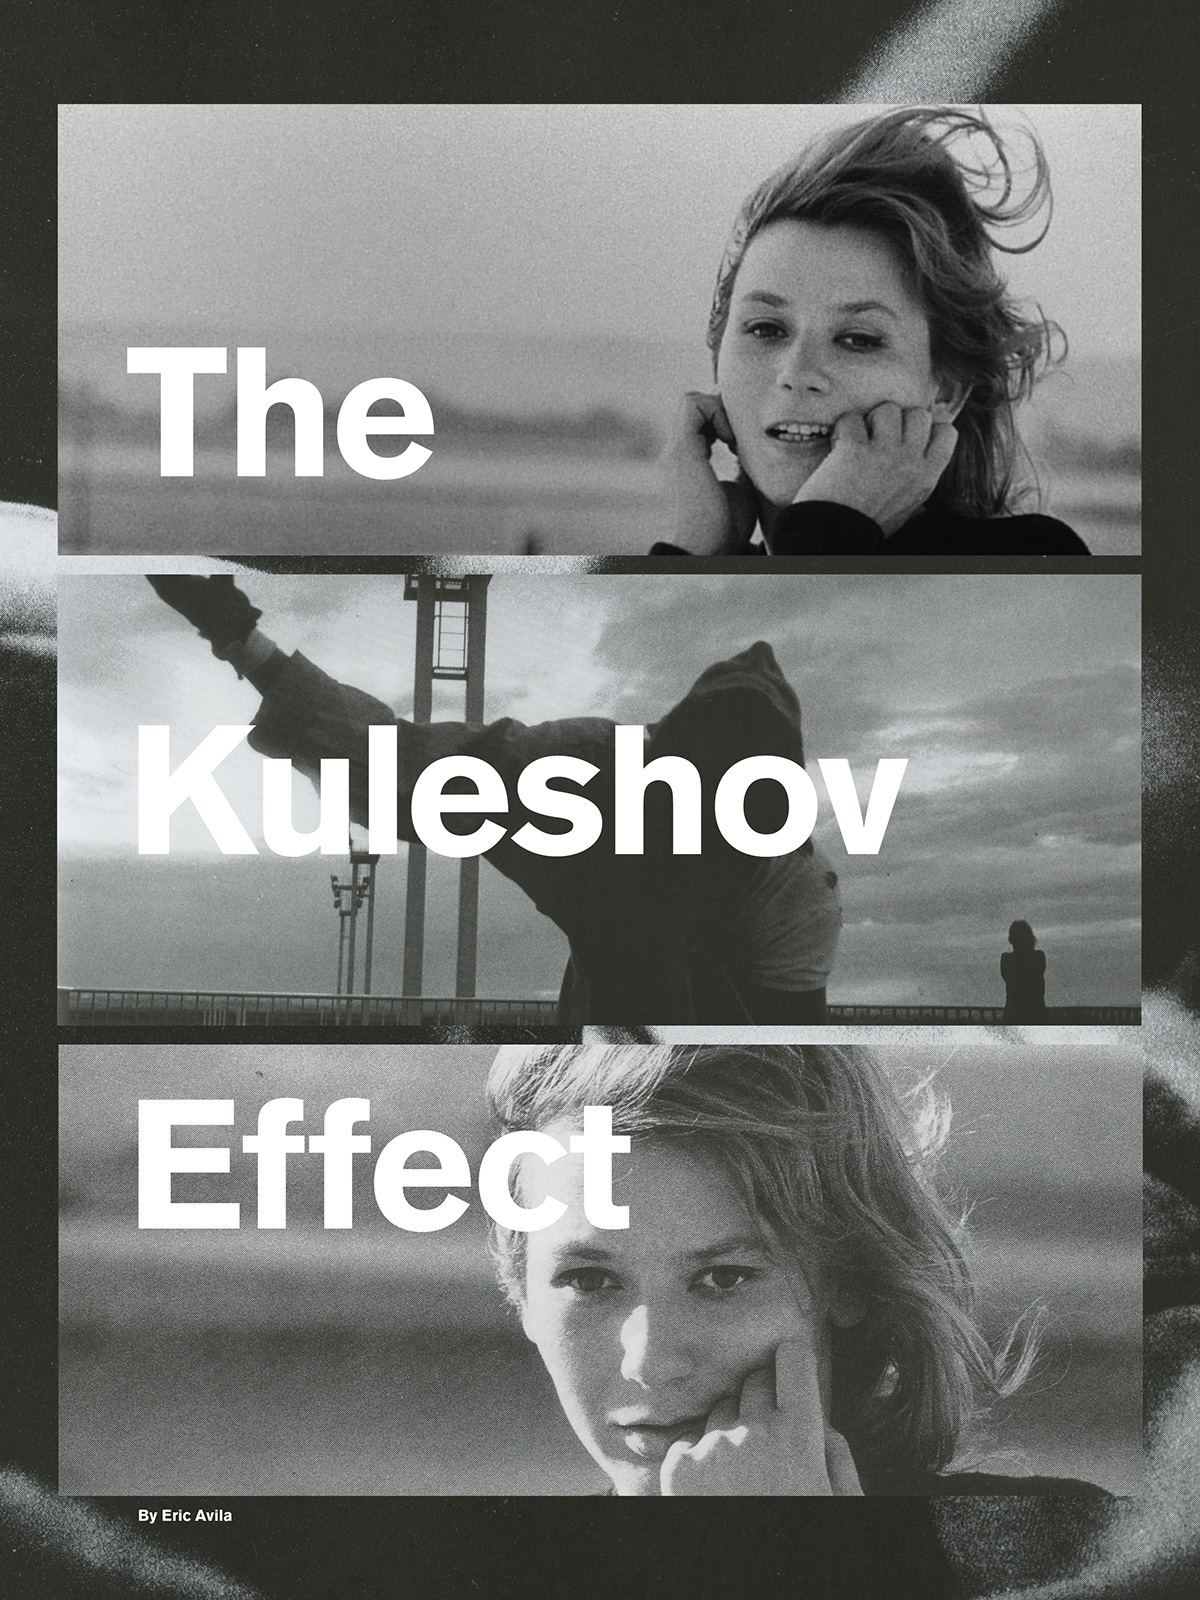 Emotions and the Kuleshov Effect